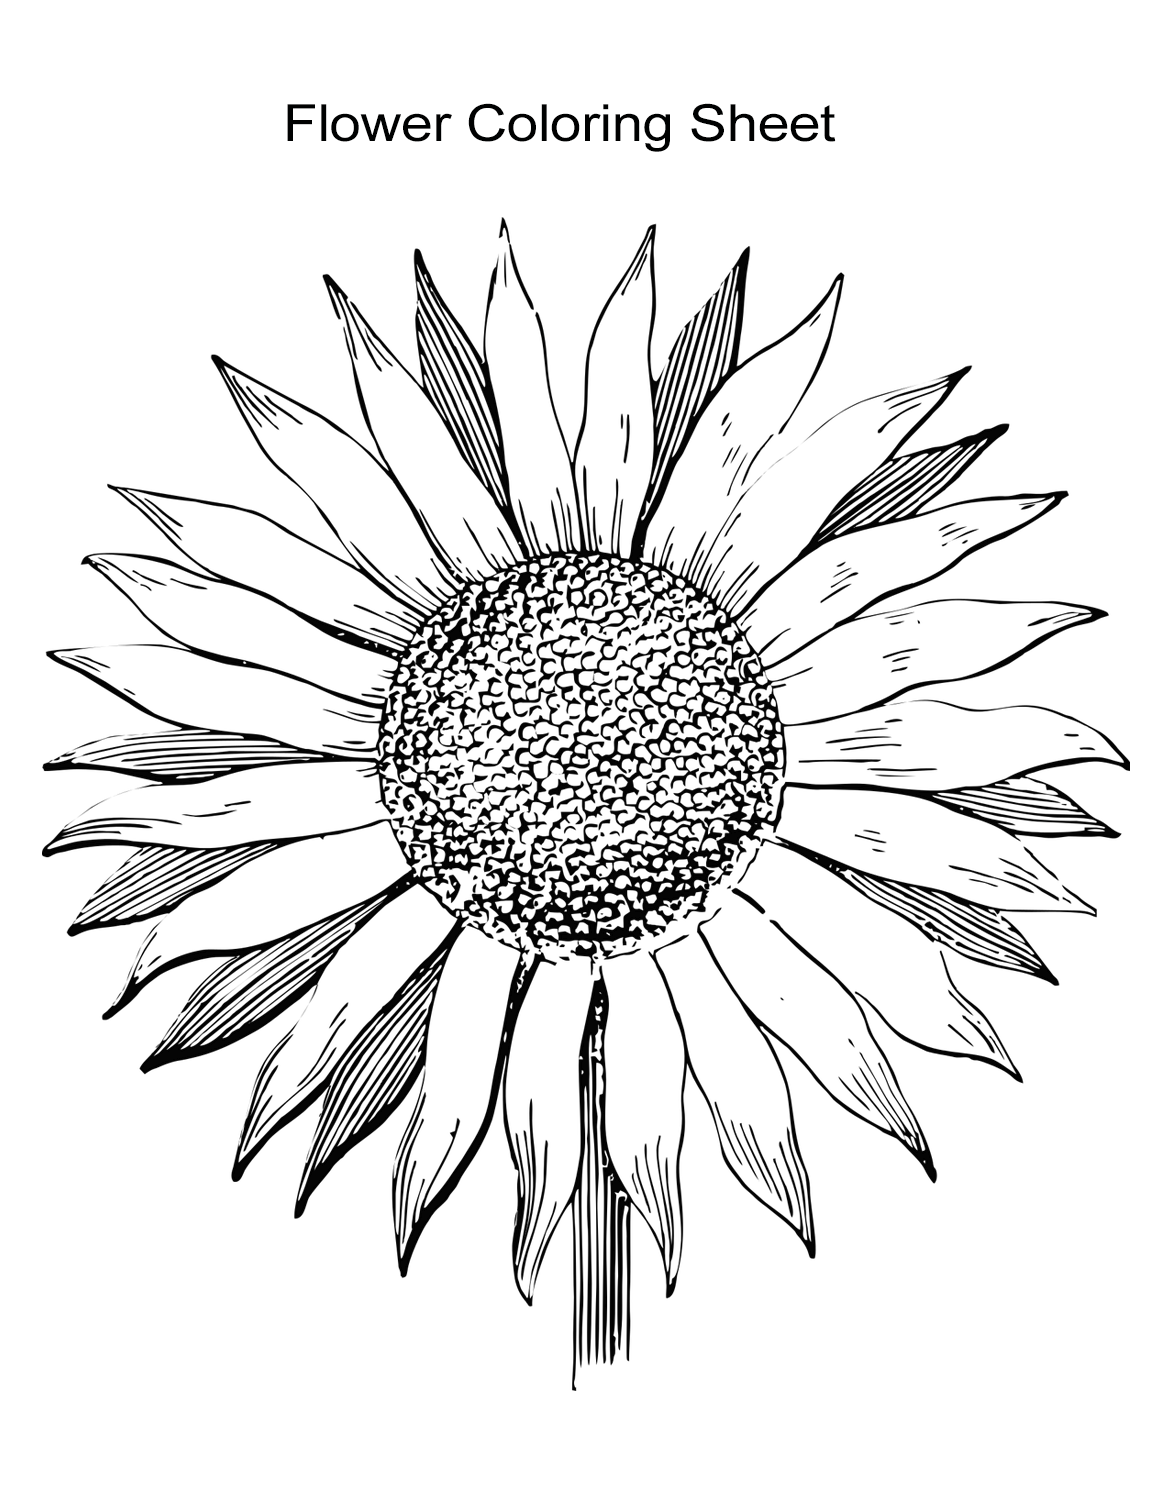 pictures of flowers to color coloring pages of flowers 2 coloring pages to print pictures to color of flowers